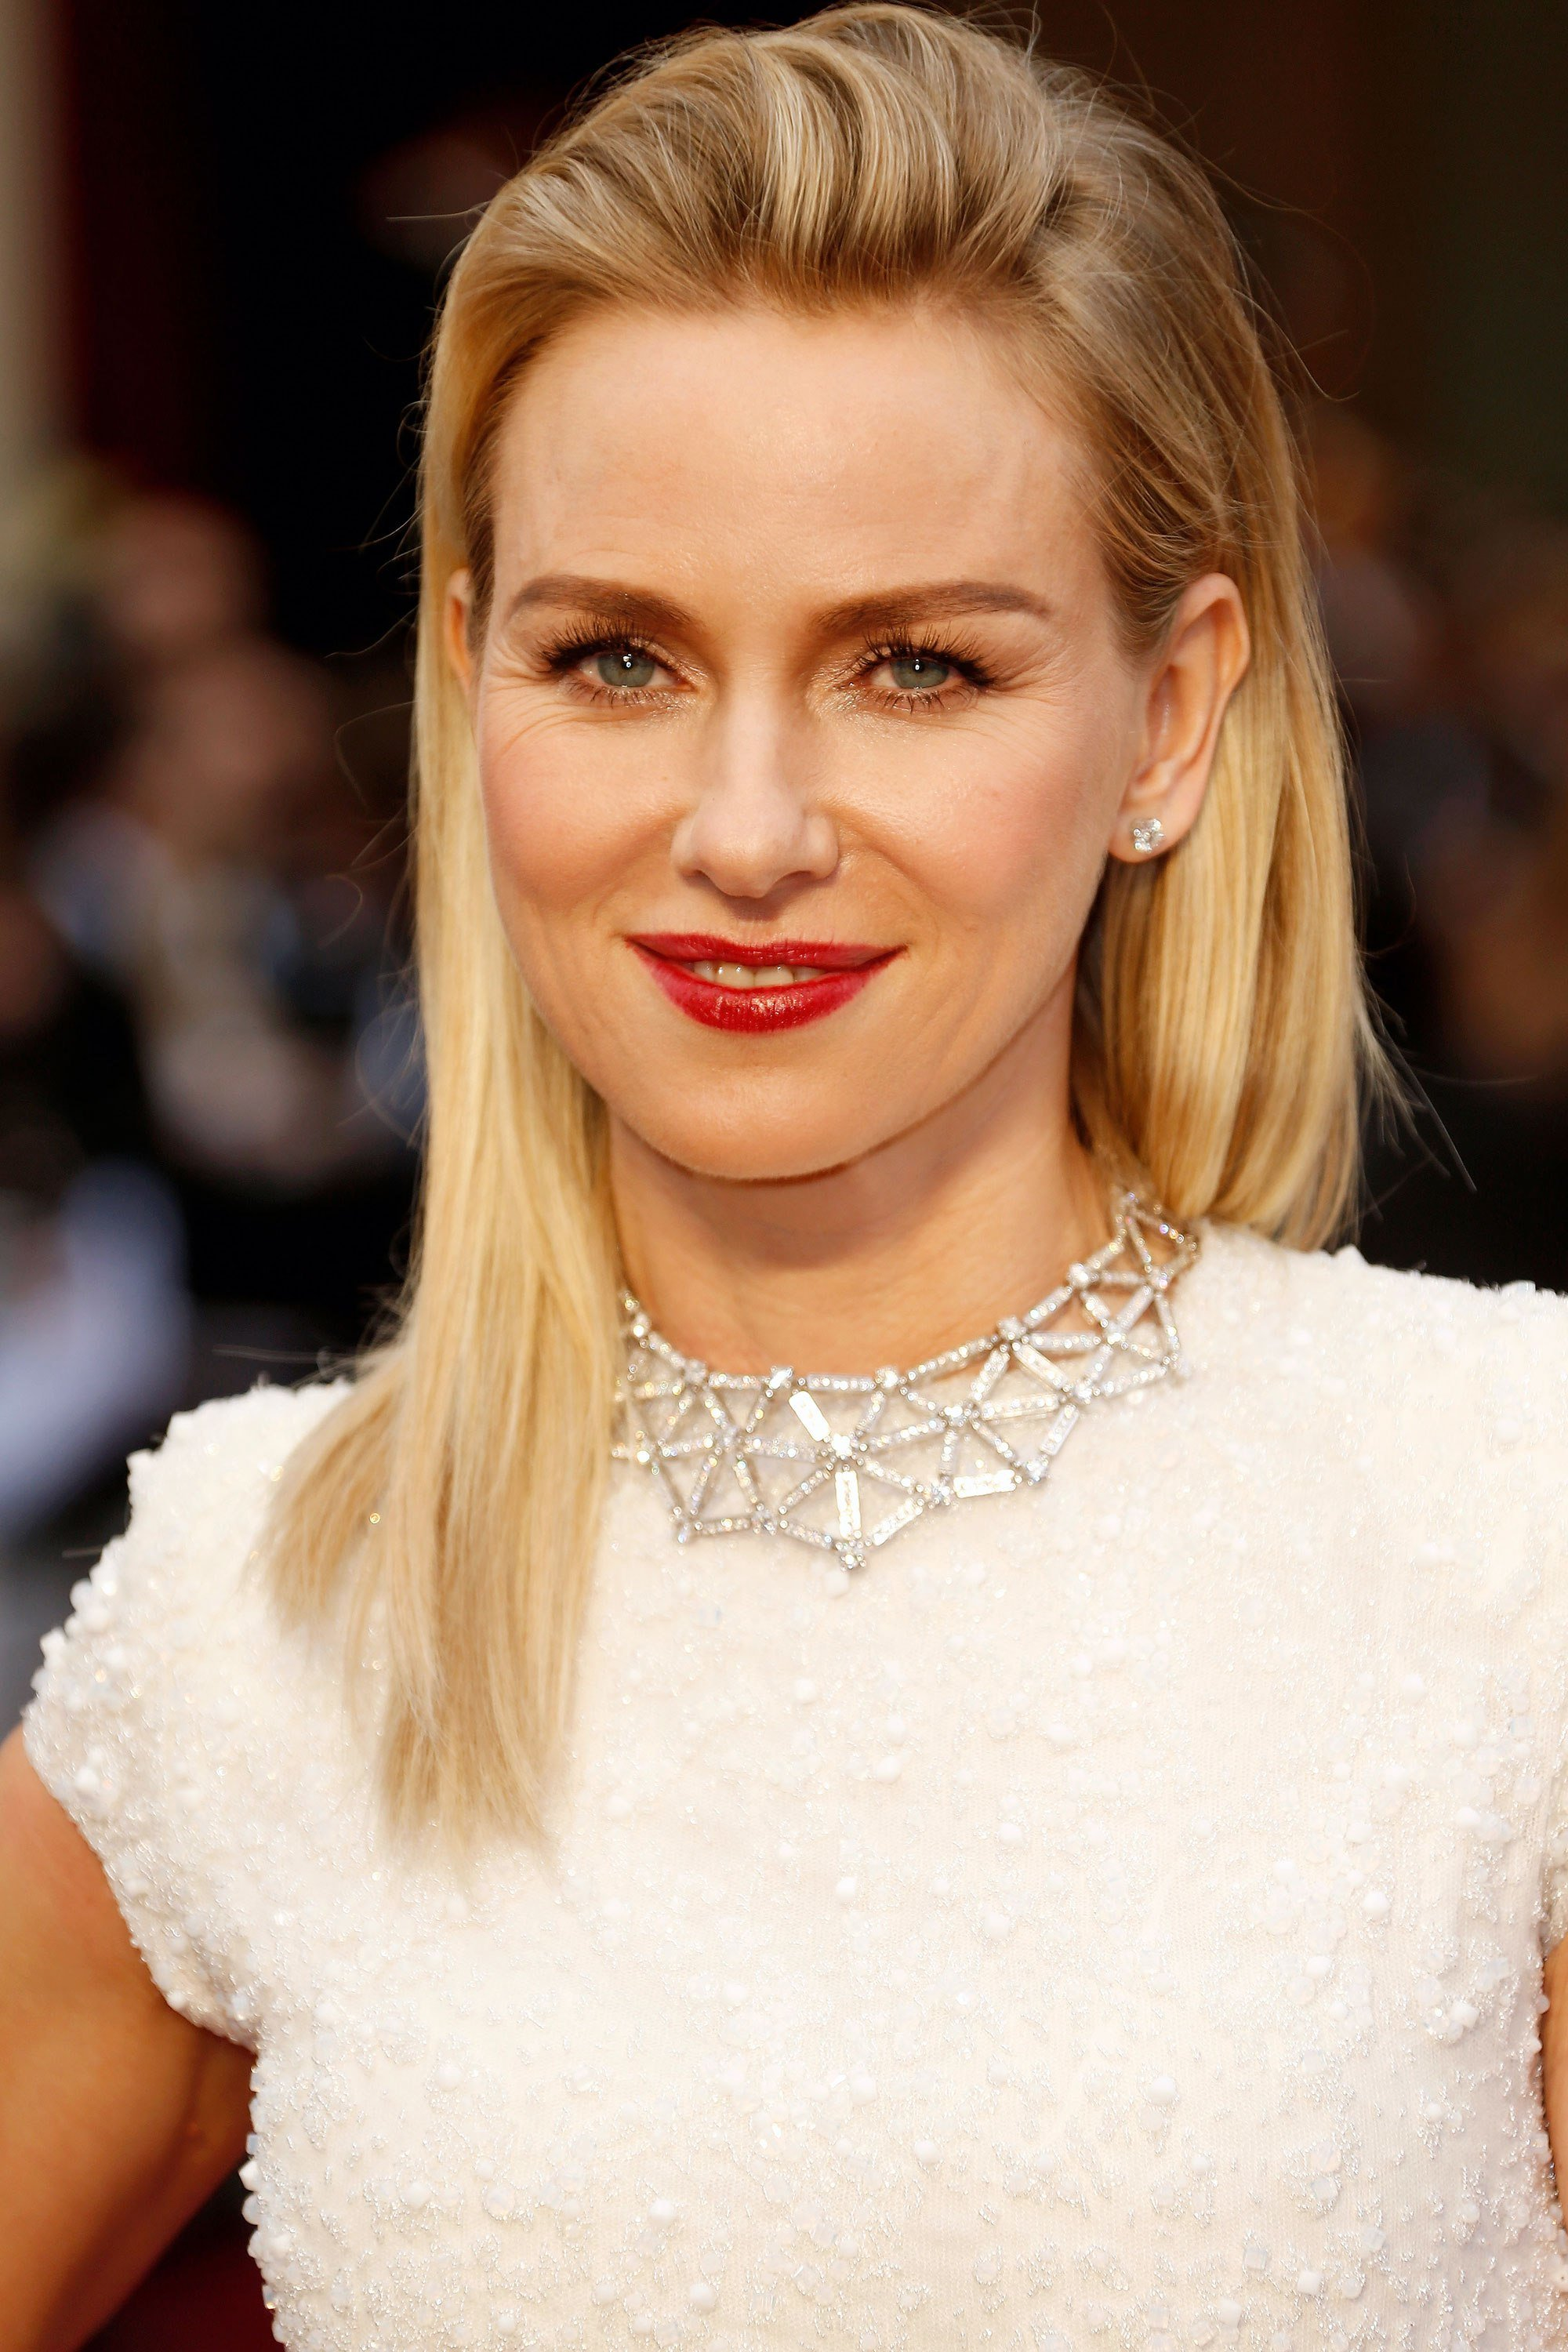 The Best Celebrity Inspired Medium Haircuts For Women To Try Elle Pictures